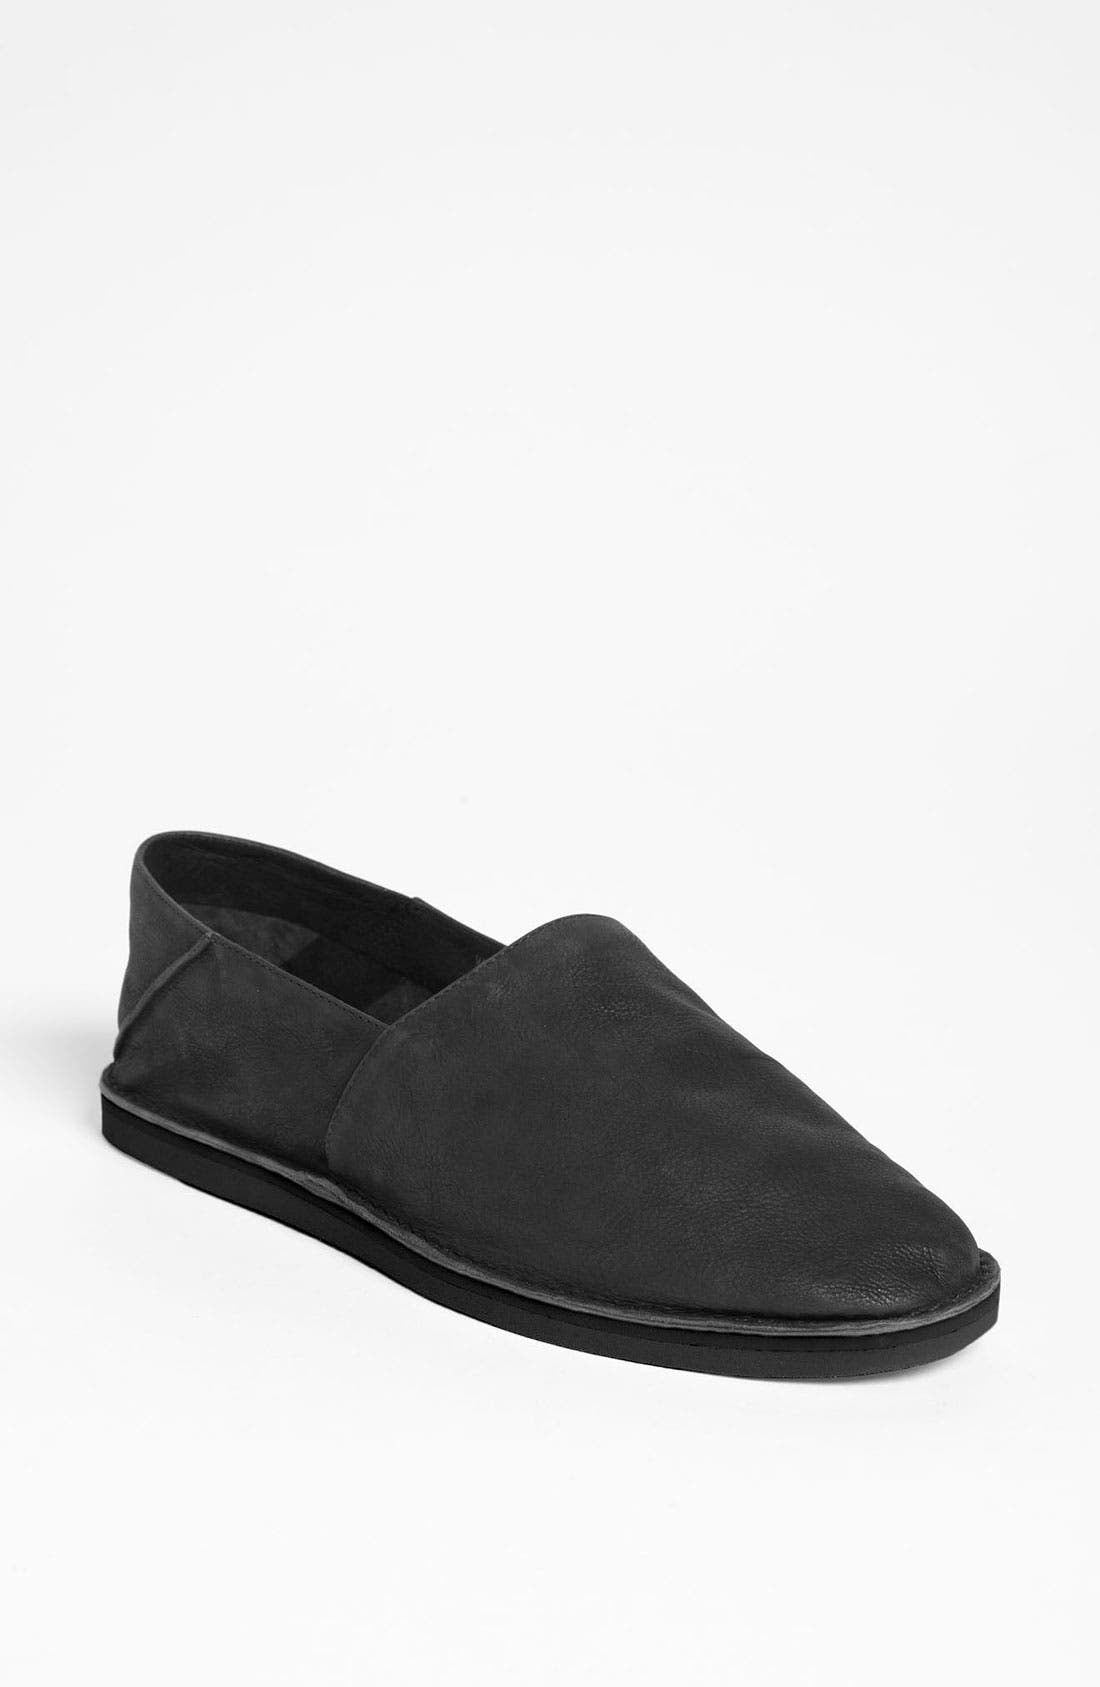 Alternate Image 1 Selected - Vince 'Kia' Slip-On